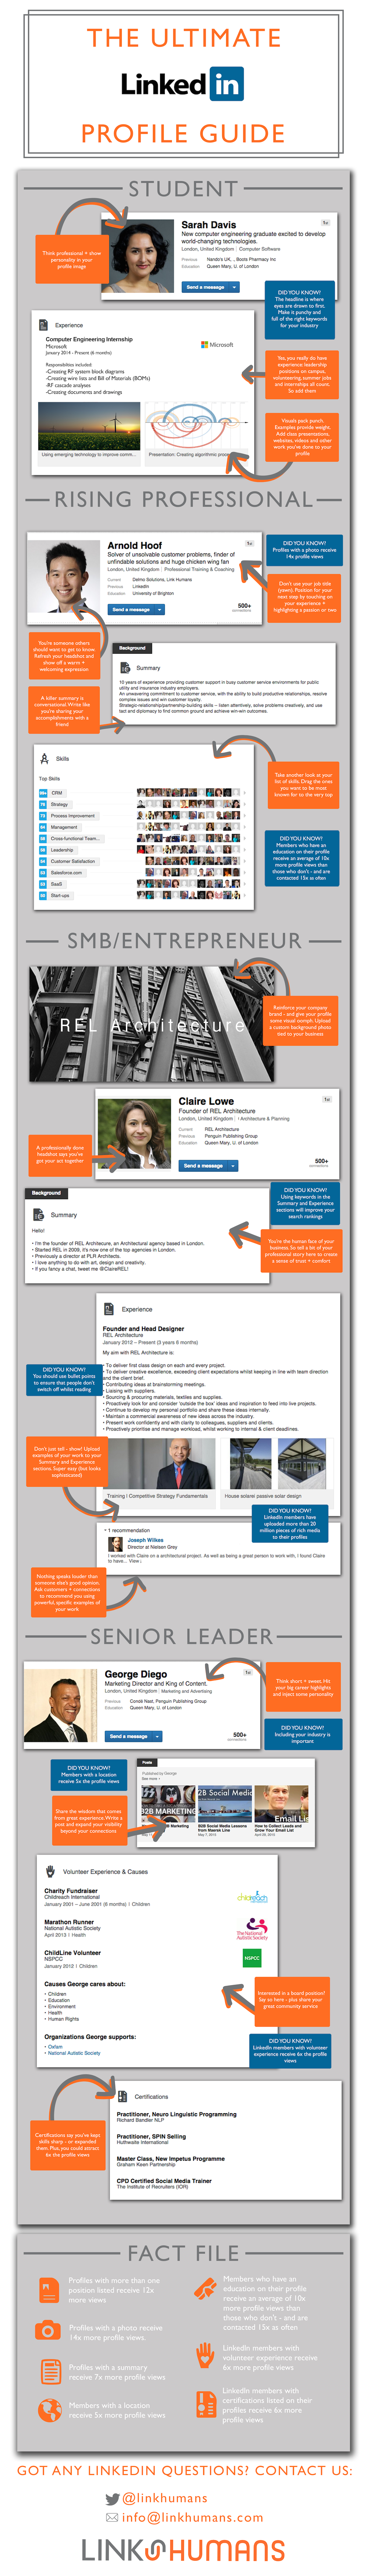 LinkedIn-Infographic-7th-October4